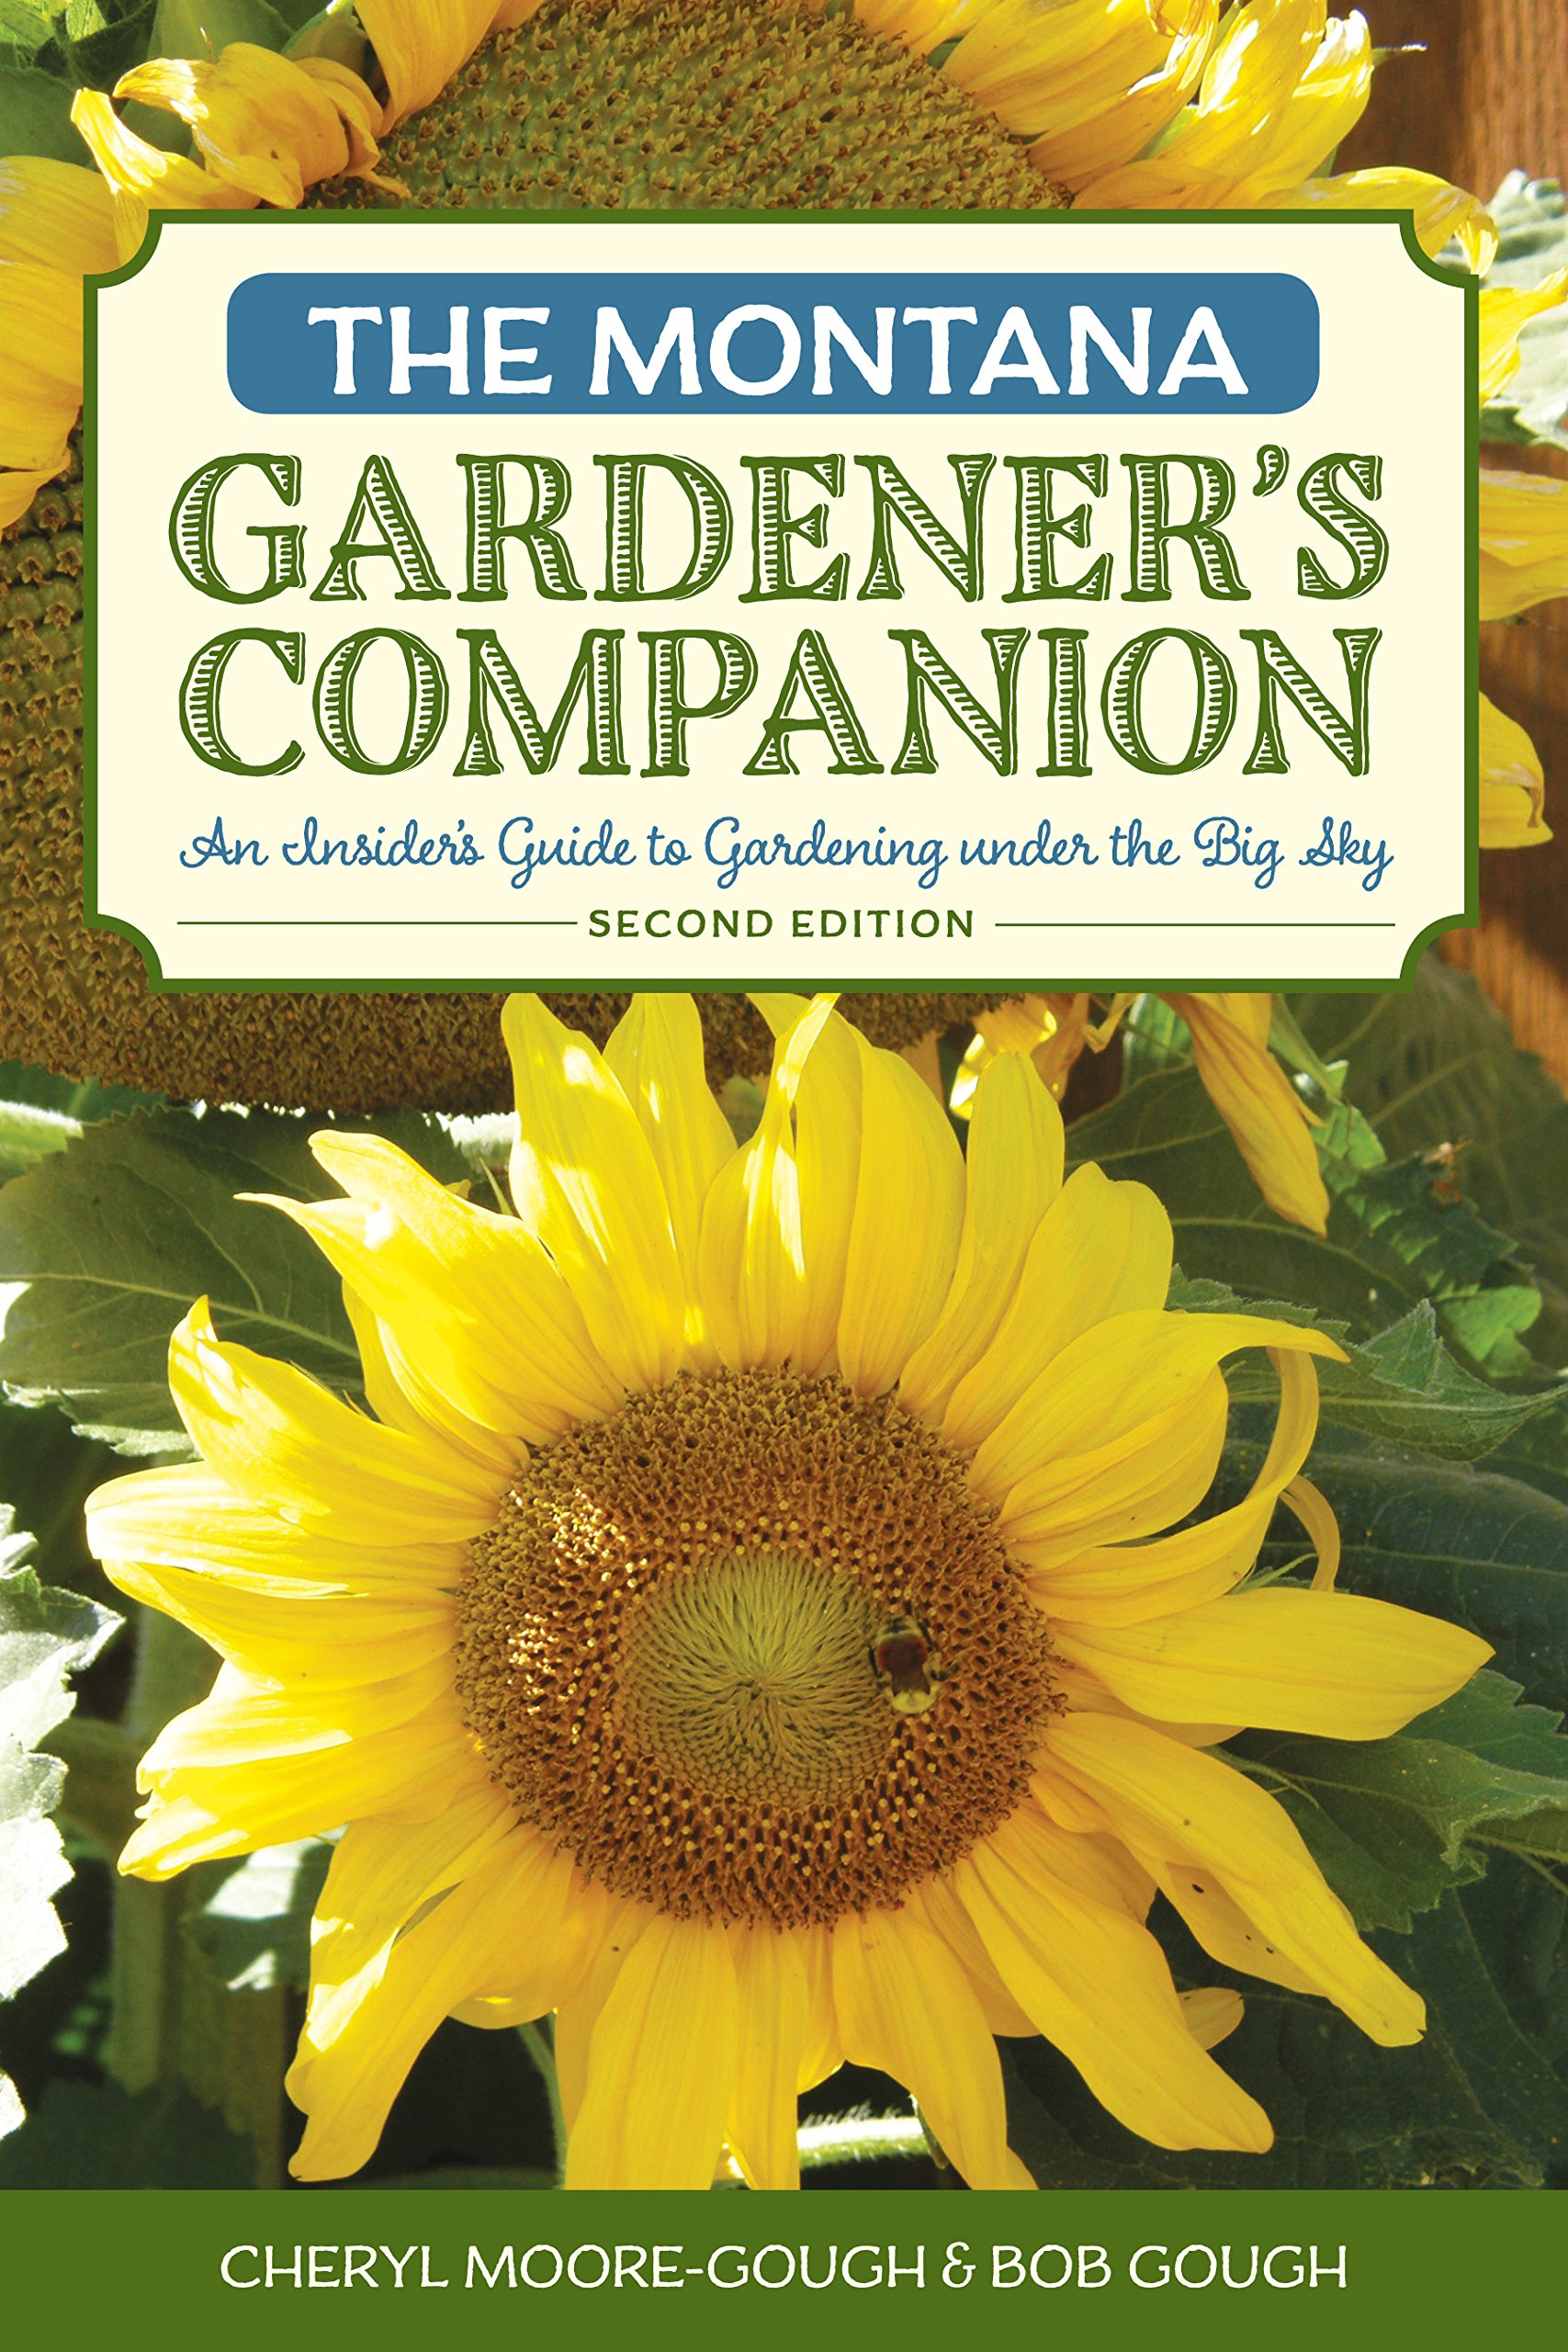 The Montana Gardener'spanion: An Insider's Guide To Gardening Under The  Big Sky (gardening Series): Cheryl Mooregough, Robert Gough:  9781493010691: